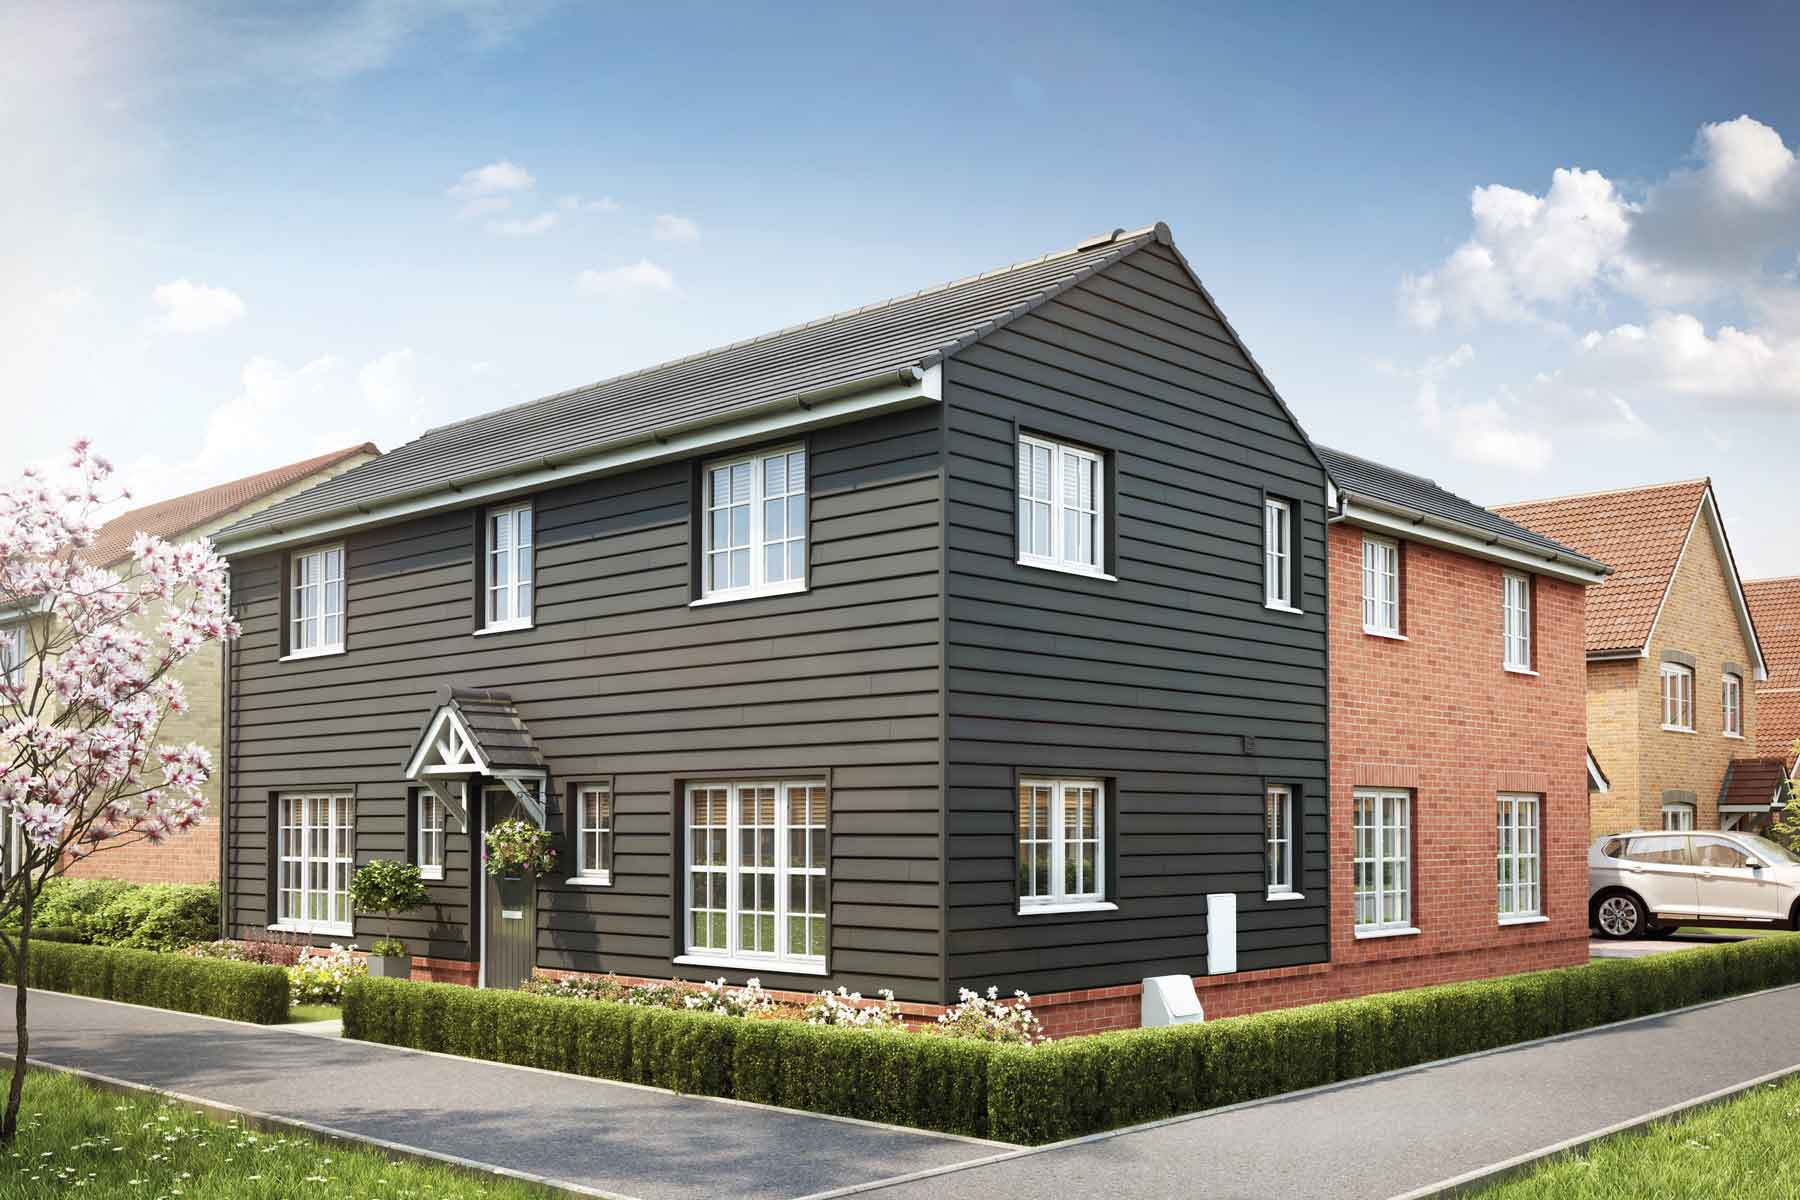 Waters edge wyborne park taylor wimpey - Average pg e bill for 3 bedroom house ...